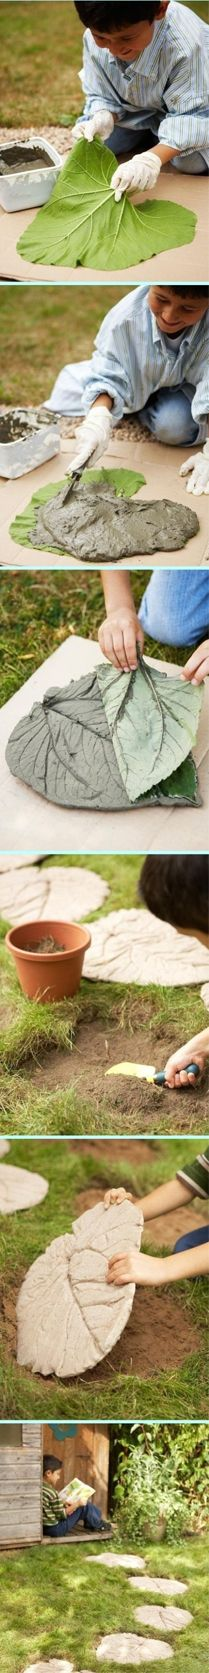 Homemade stones for a garden path #clever